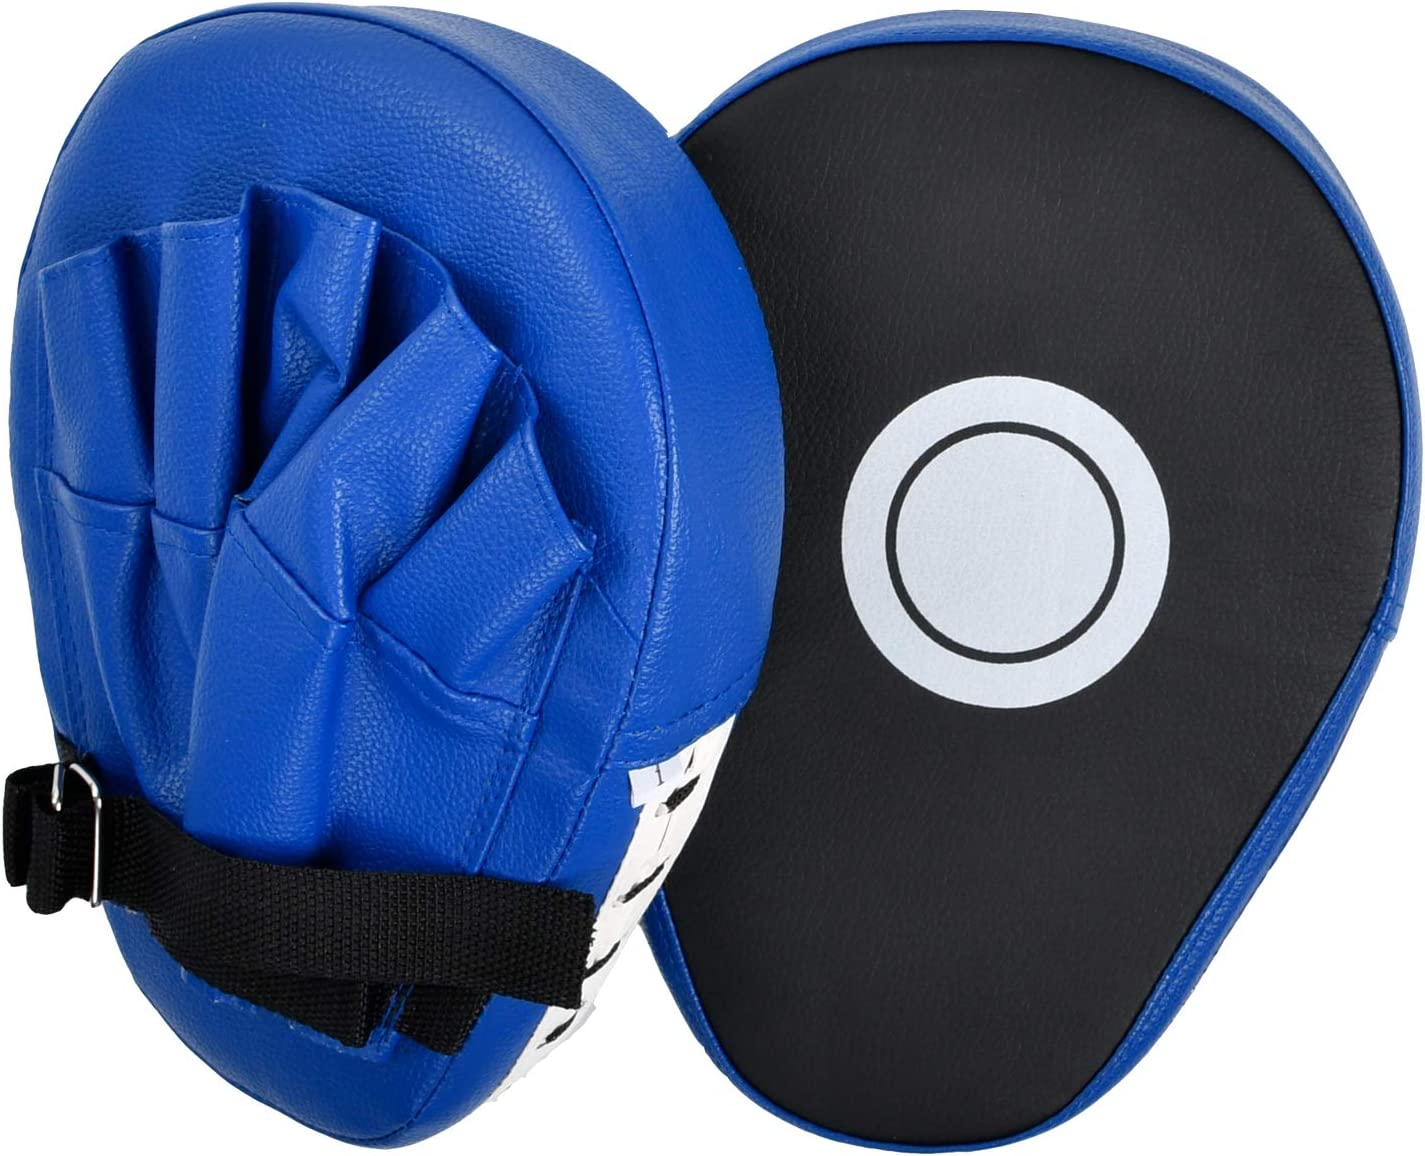 Focus Punch Paddles Mitts Boxing Pads MMA Strike Mitt Coaching Training